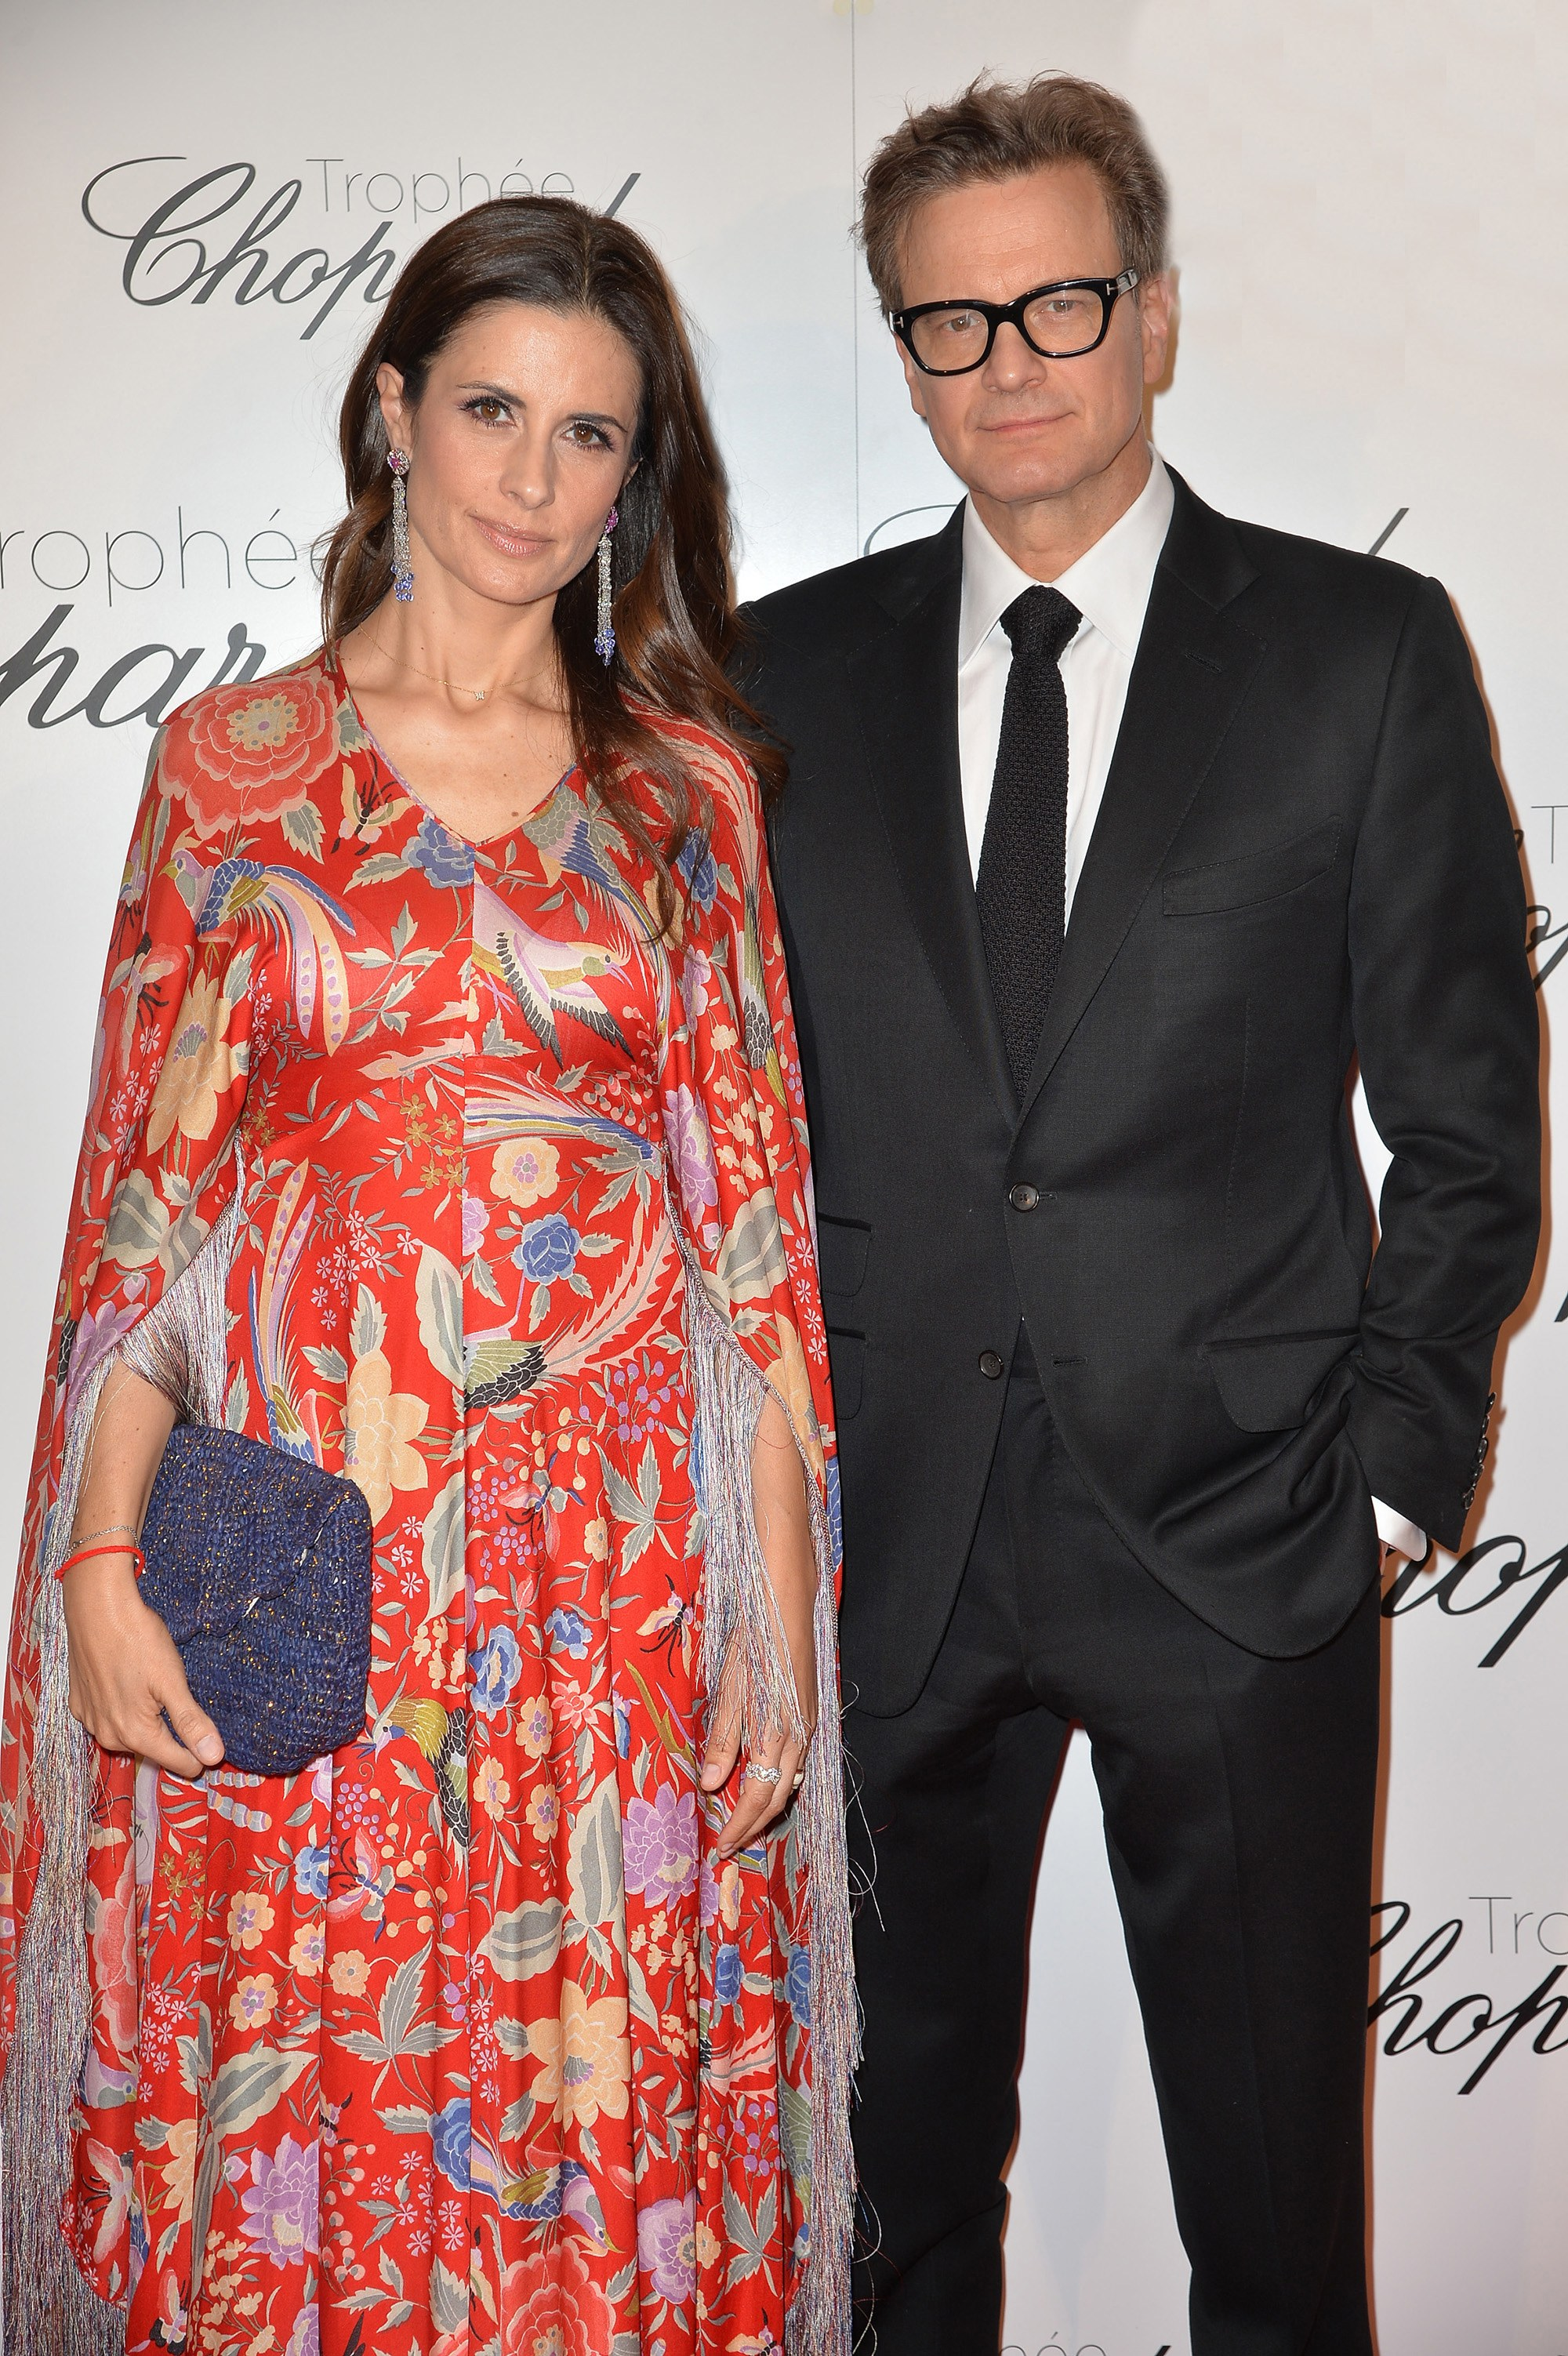 Cannes 2015 - Livia and Colin Firth